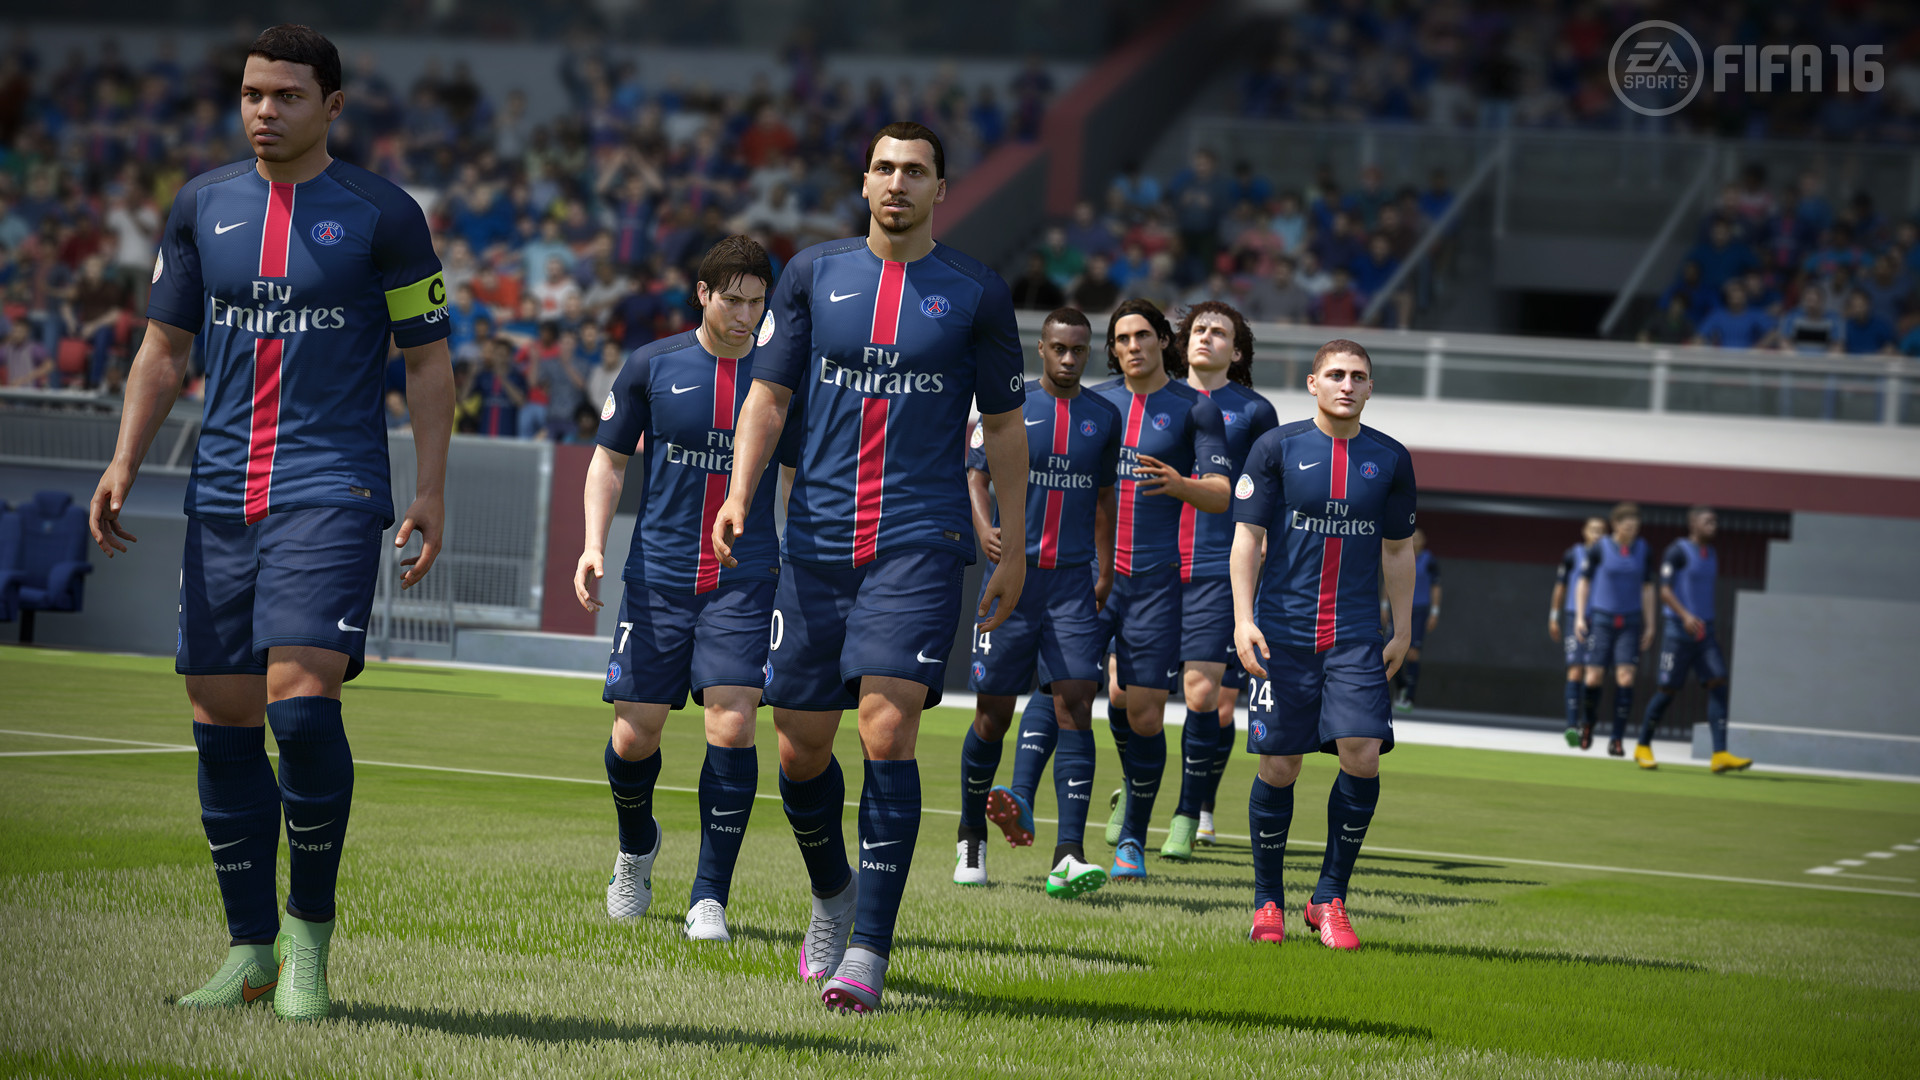 FIFA 16 - not as good a start as last year